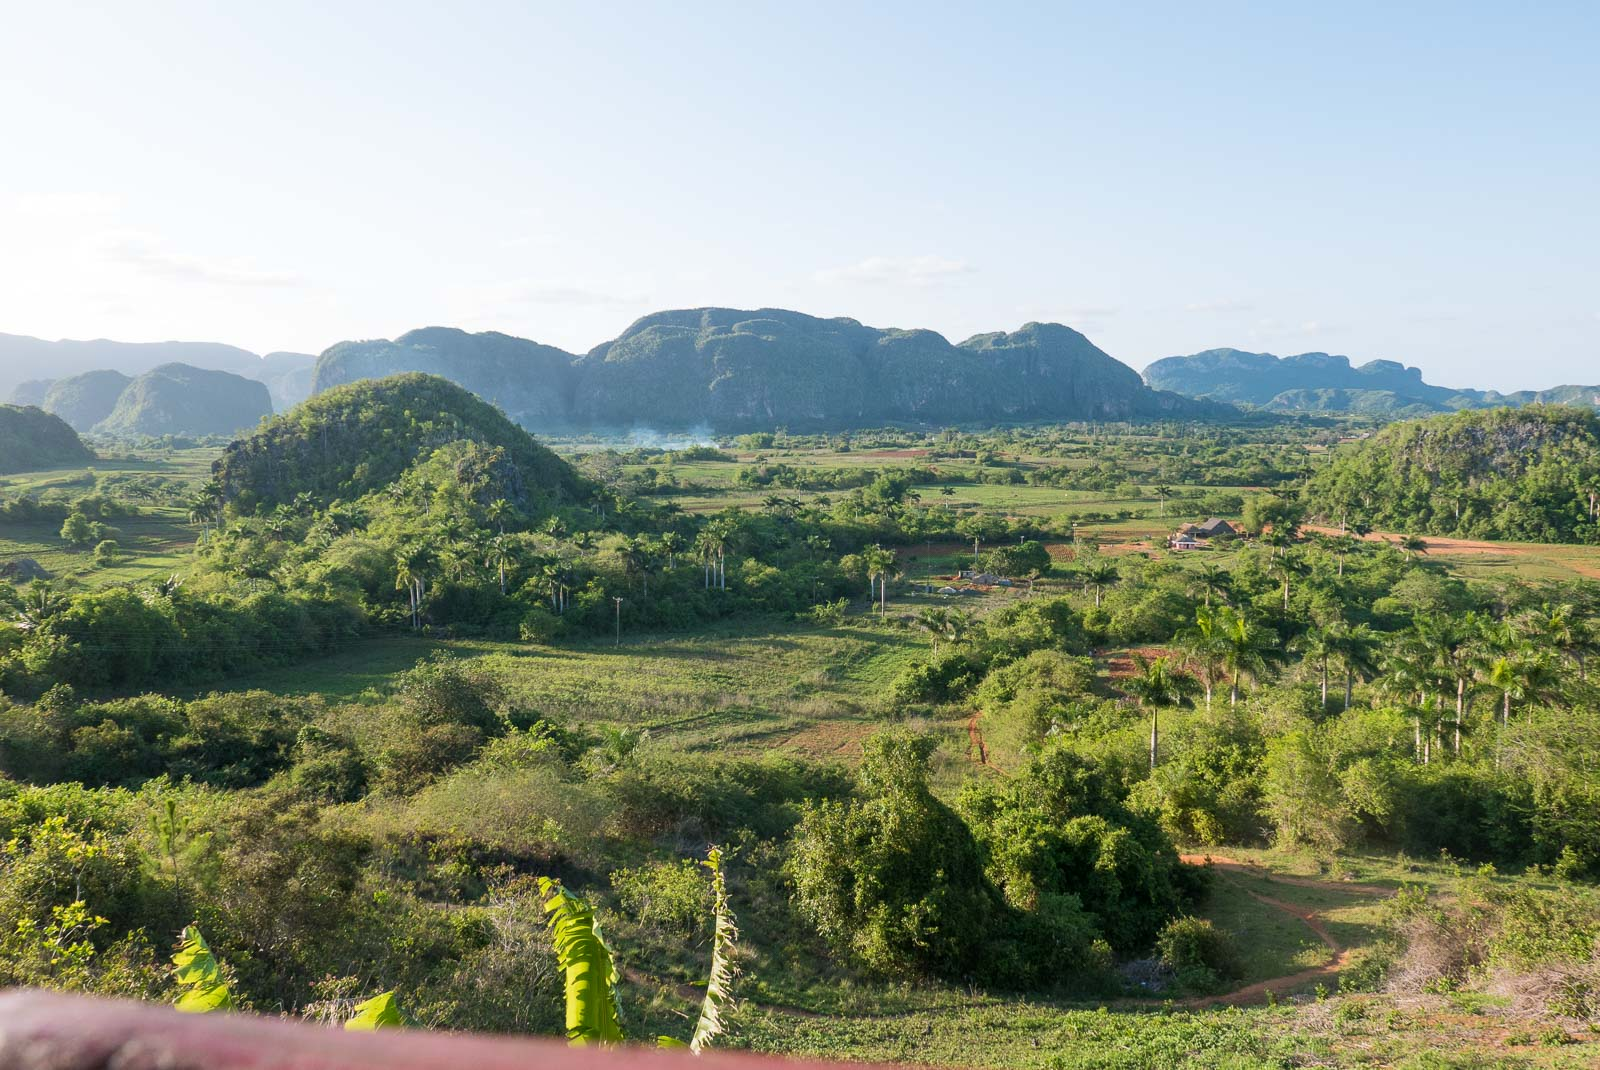 View over the mountain and valley in Vinales, Cuba.